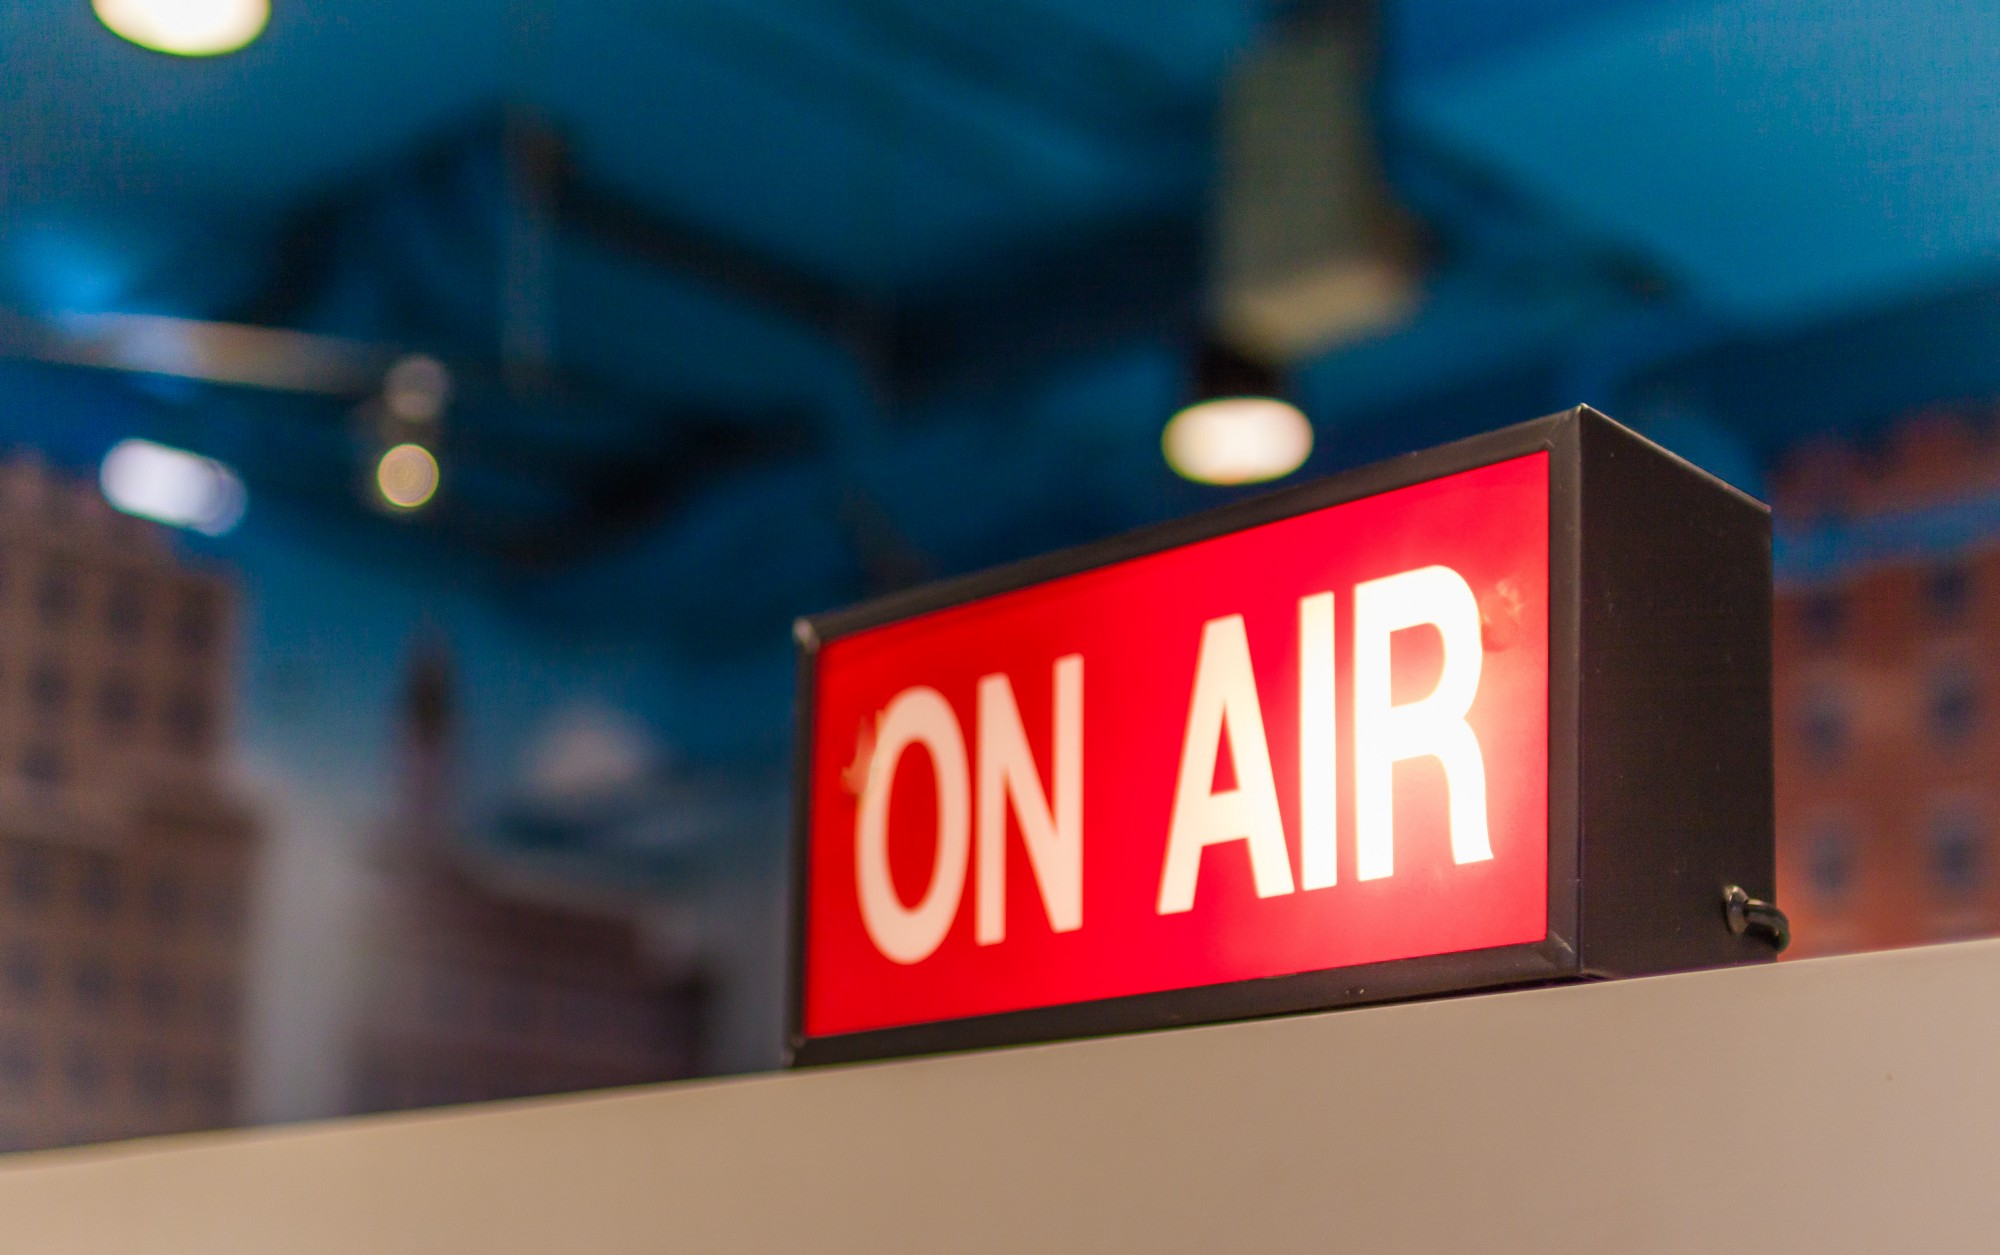 Broadcasting On Air sign